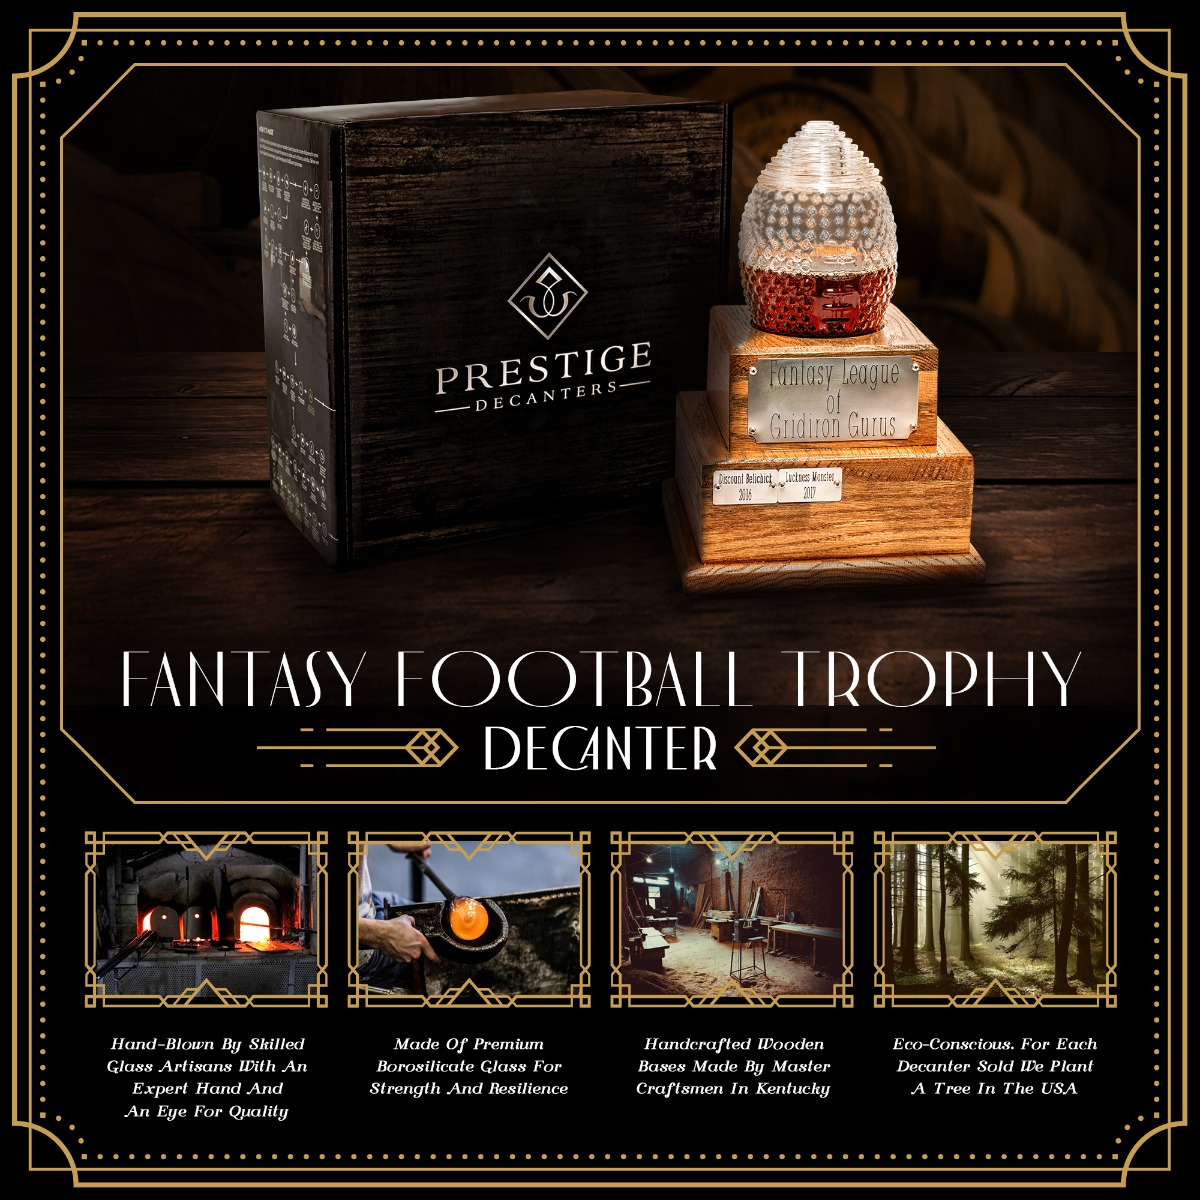 Features of Fantasy Football Trophy decanter